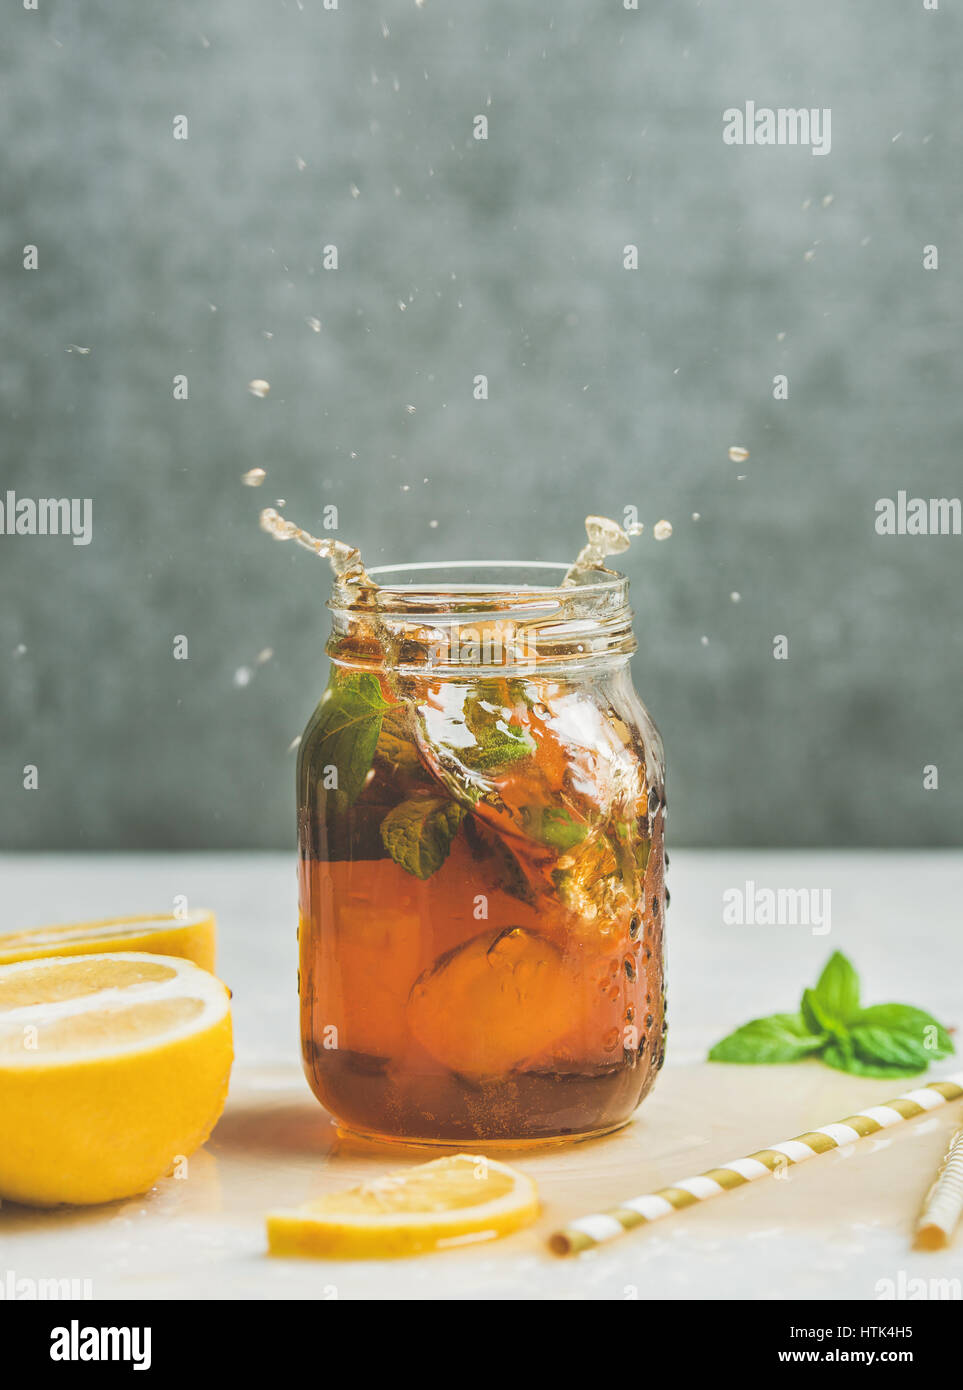 Summer Iced tea with lemon and herbs, copy space - Stock Image